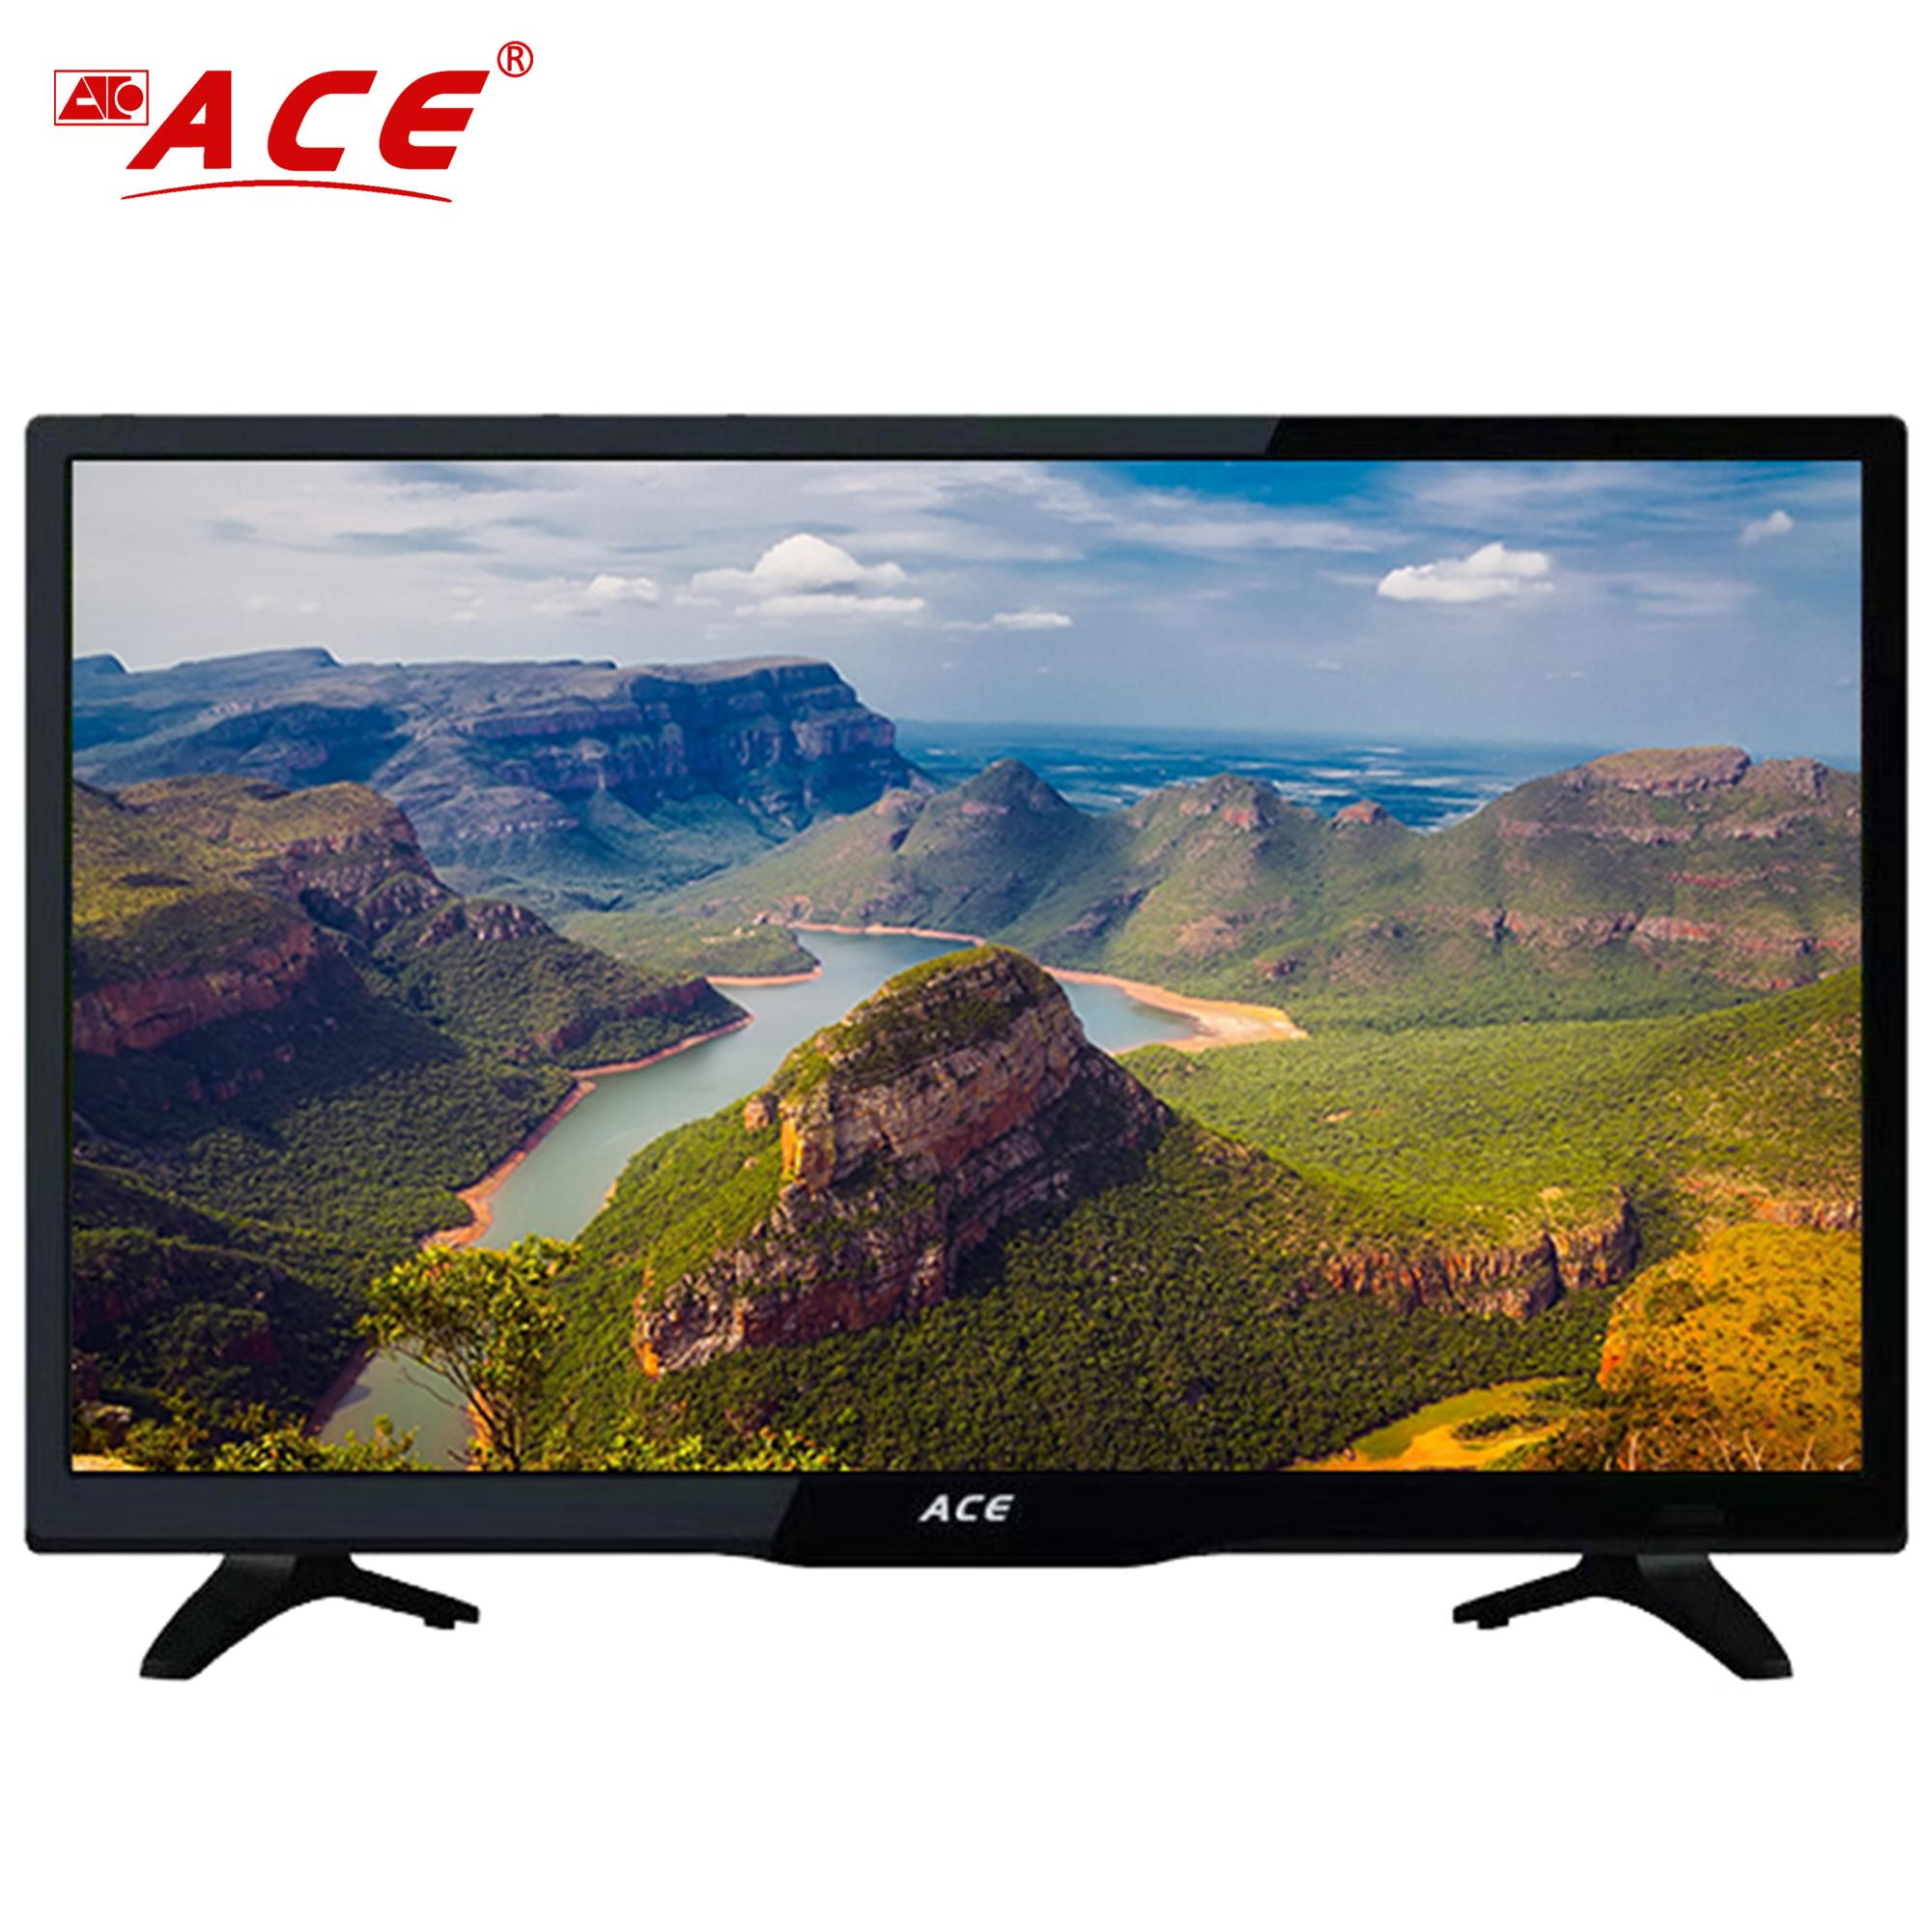 bfd7182aad4bc7 Ace 20 Super Slim Full HD TV Black LED-505 DN6